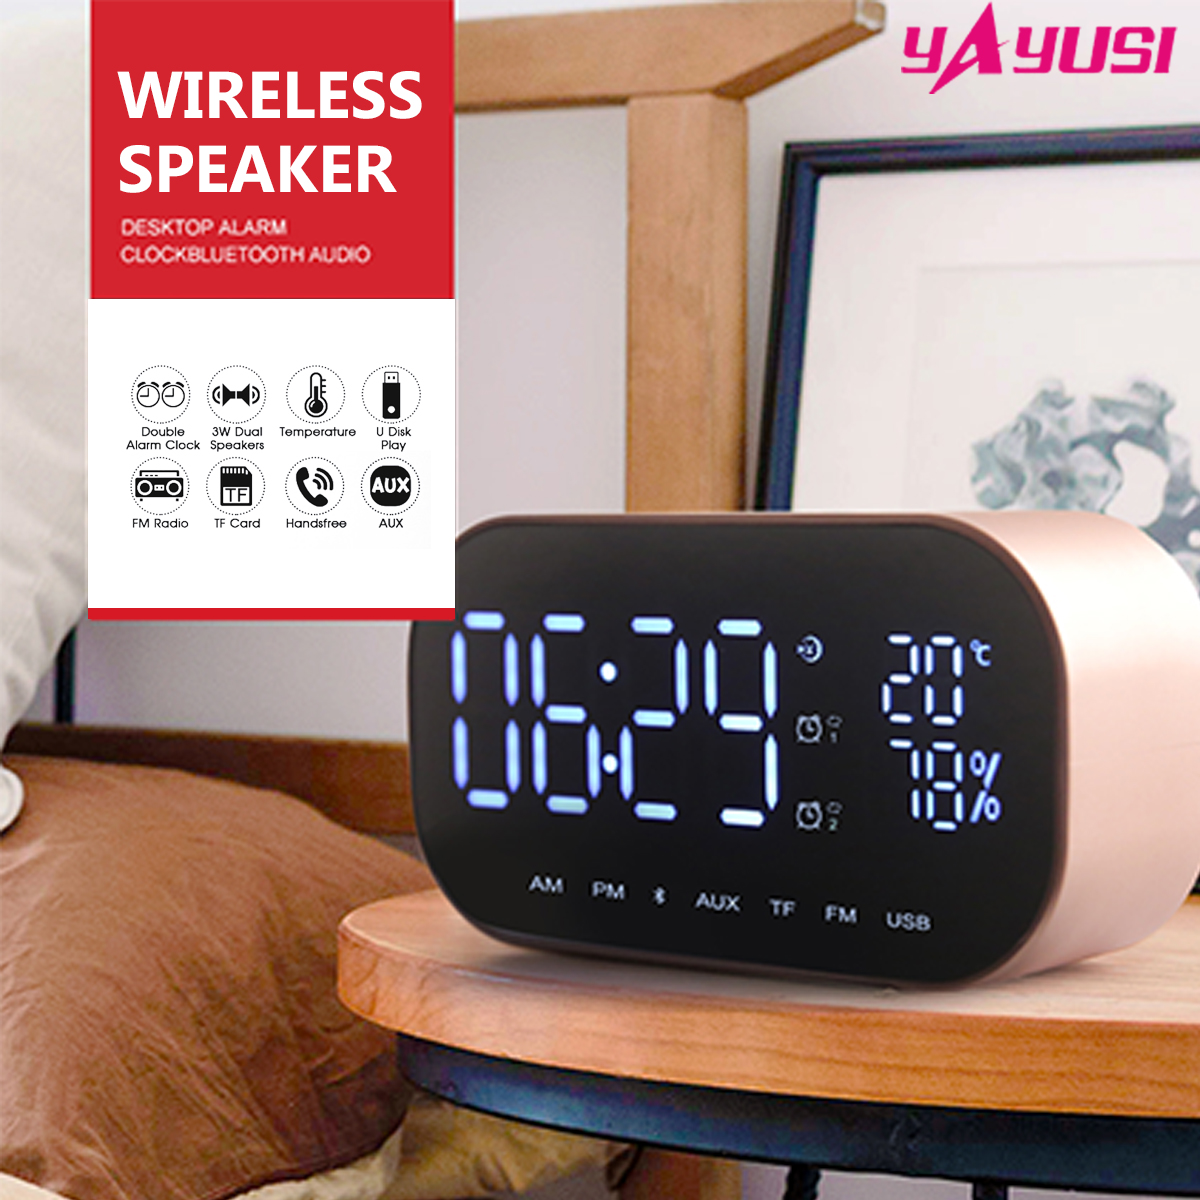 Outdoor LED Wireless Bluetooth Speaker Dual Units FM Radio Alarm Clock USB Micro SD TF AUX Portable Loudspeaker Sound System 25w wireless bluetooth speaker stereo bass portable loudspeaker sound system aux usb tf card fm radio outdoor speaker subwoofer